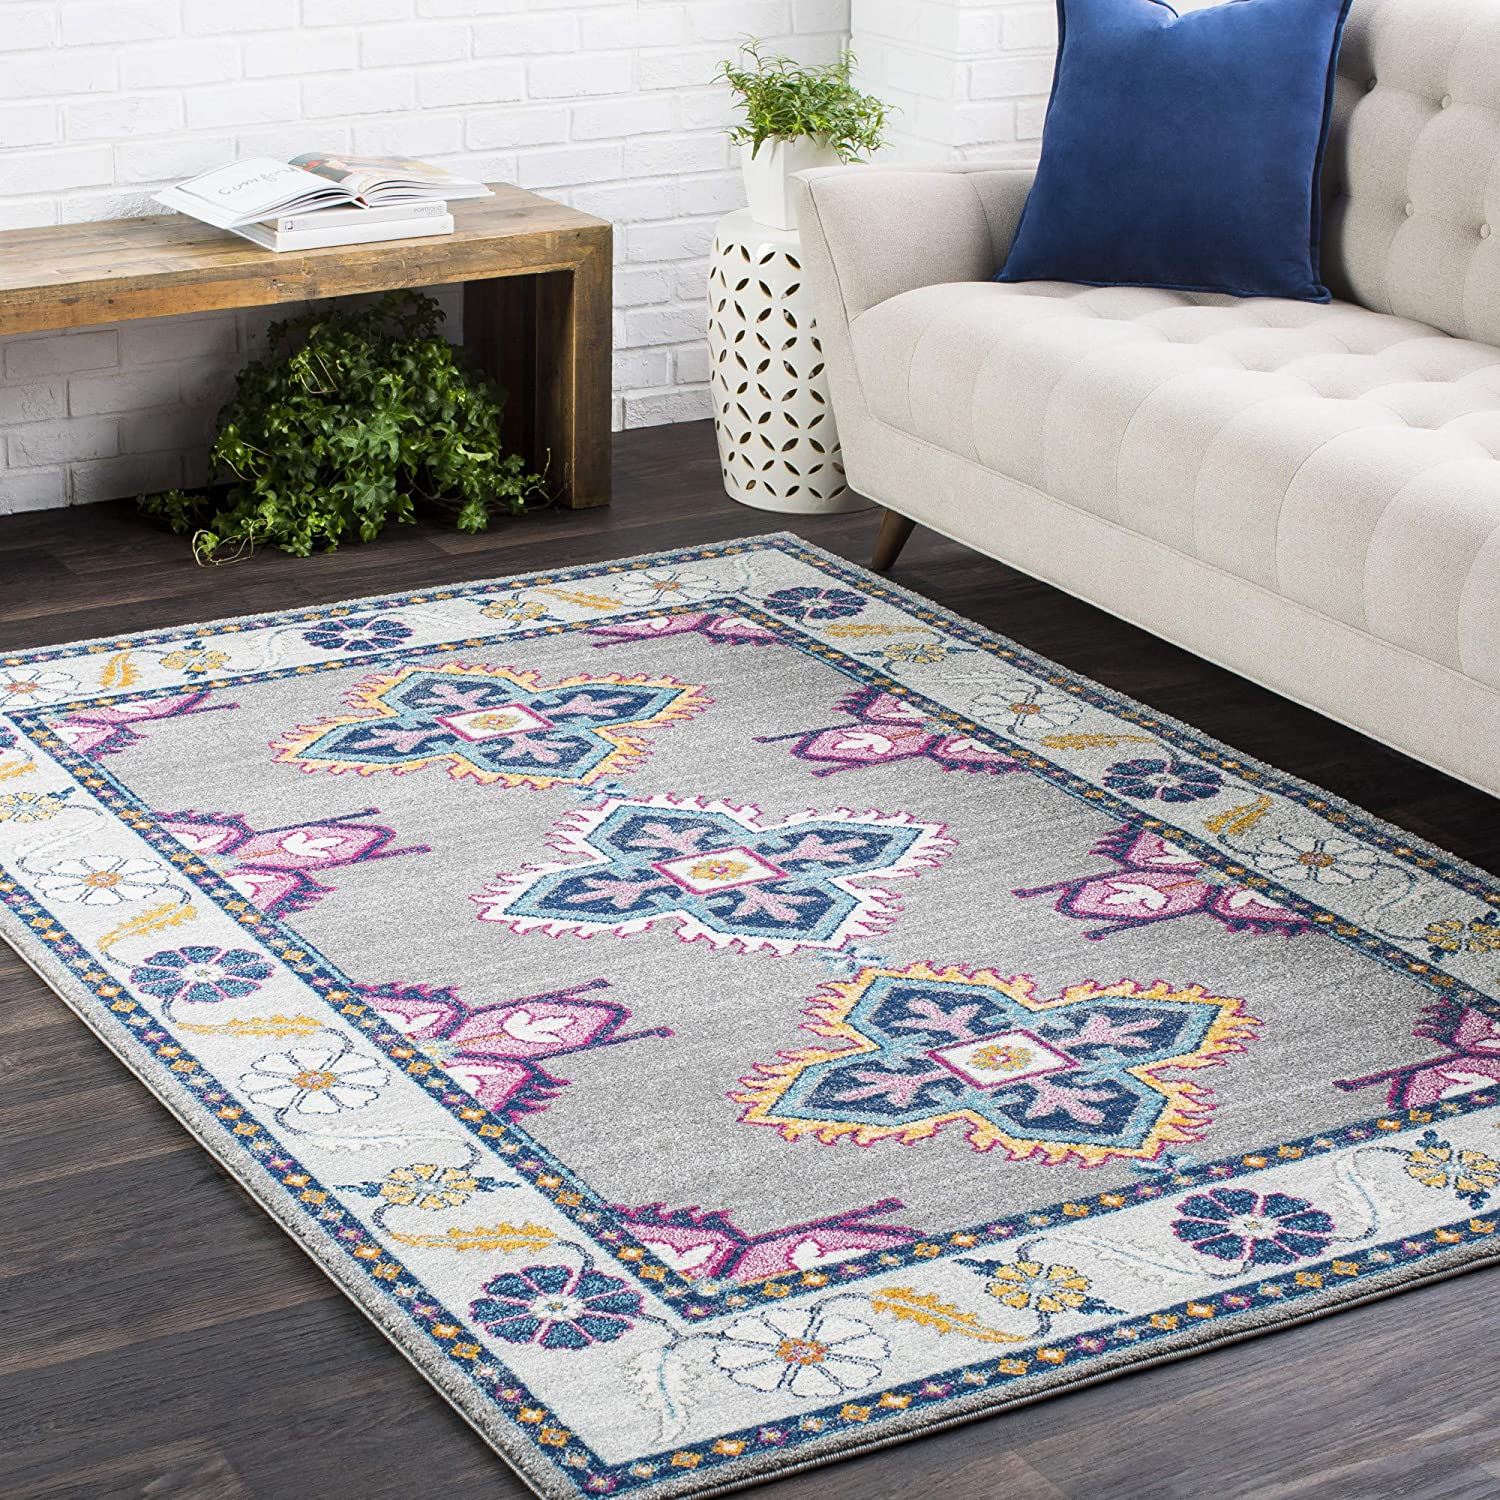 Elodia Dark Blue and Teal Updated Rug Area Large special price 7' 5'3